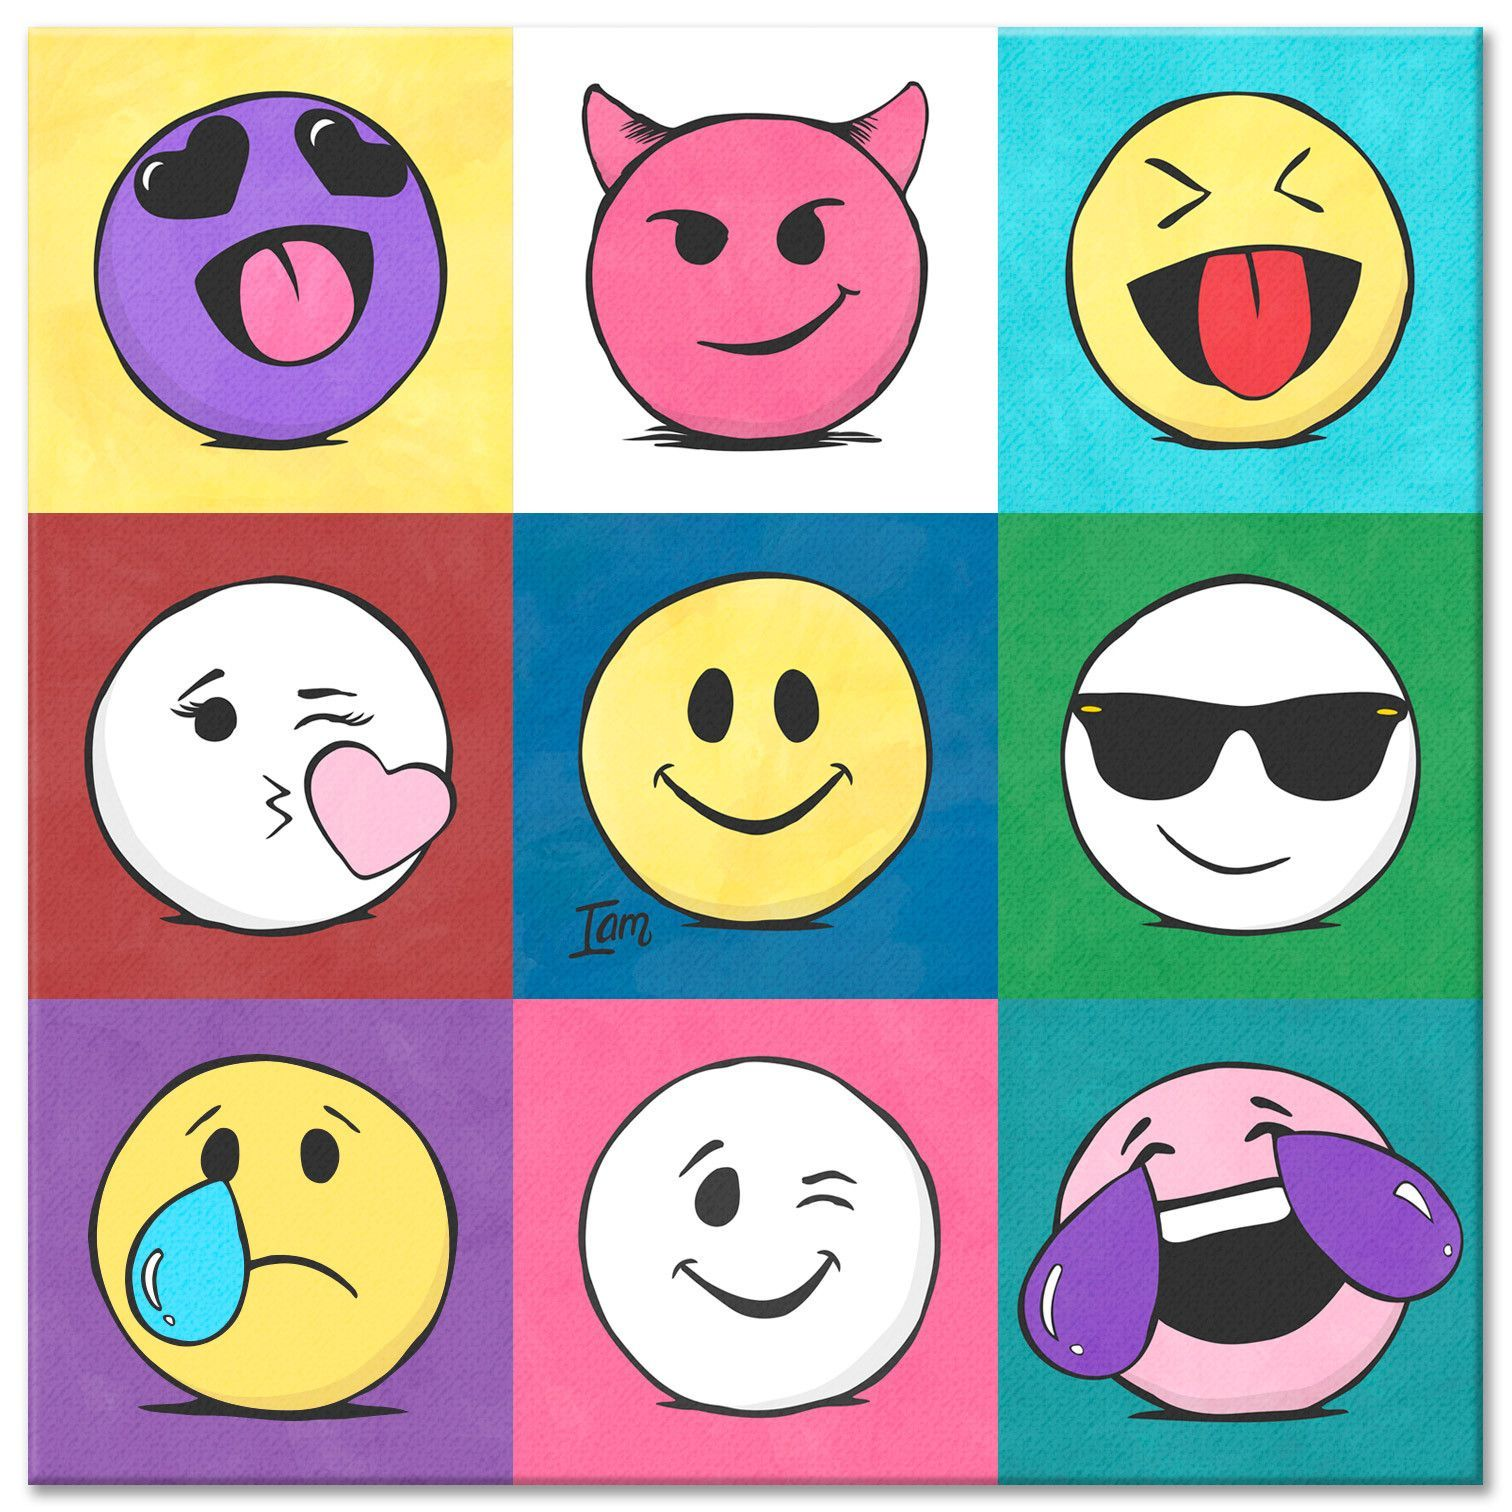 the emoji bunch canvas a portion of our proceeds go to help